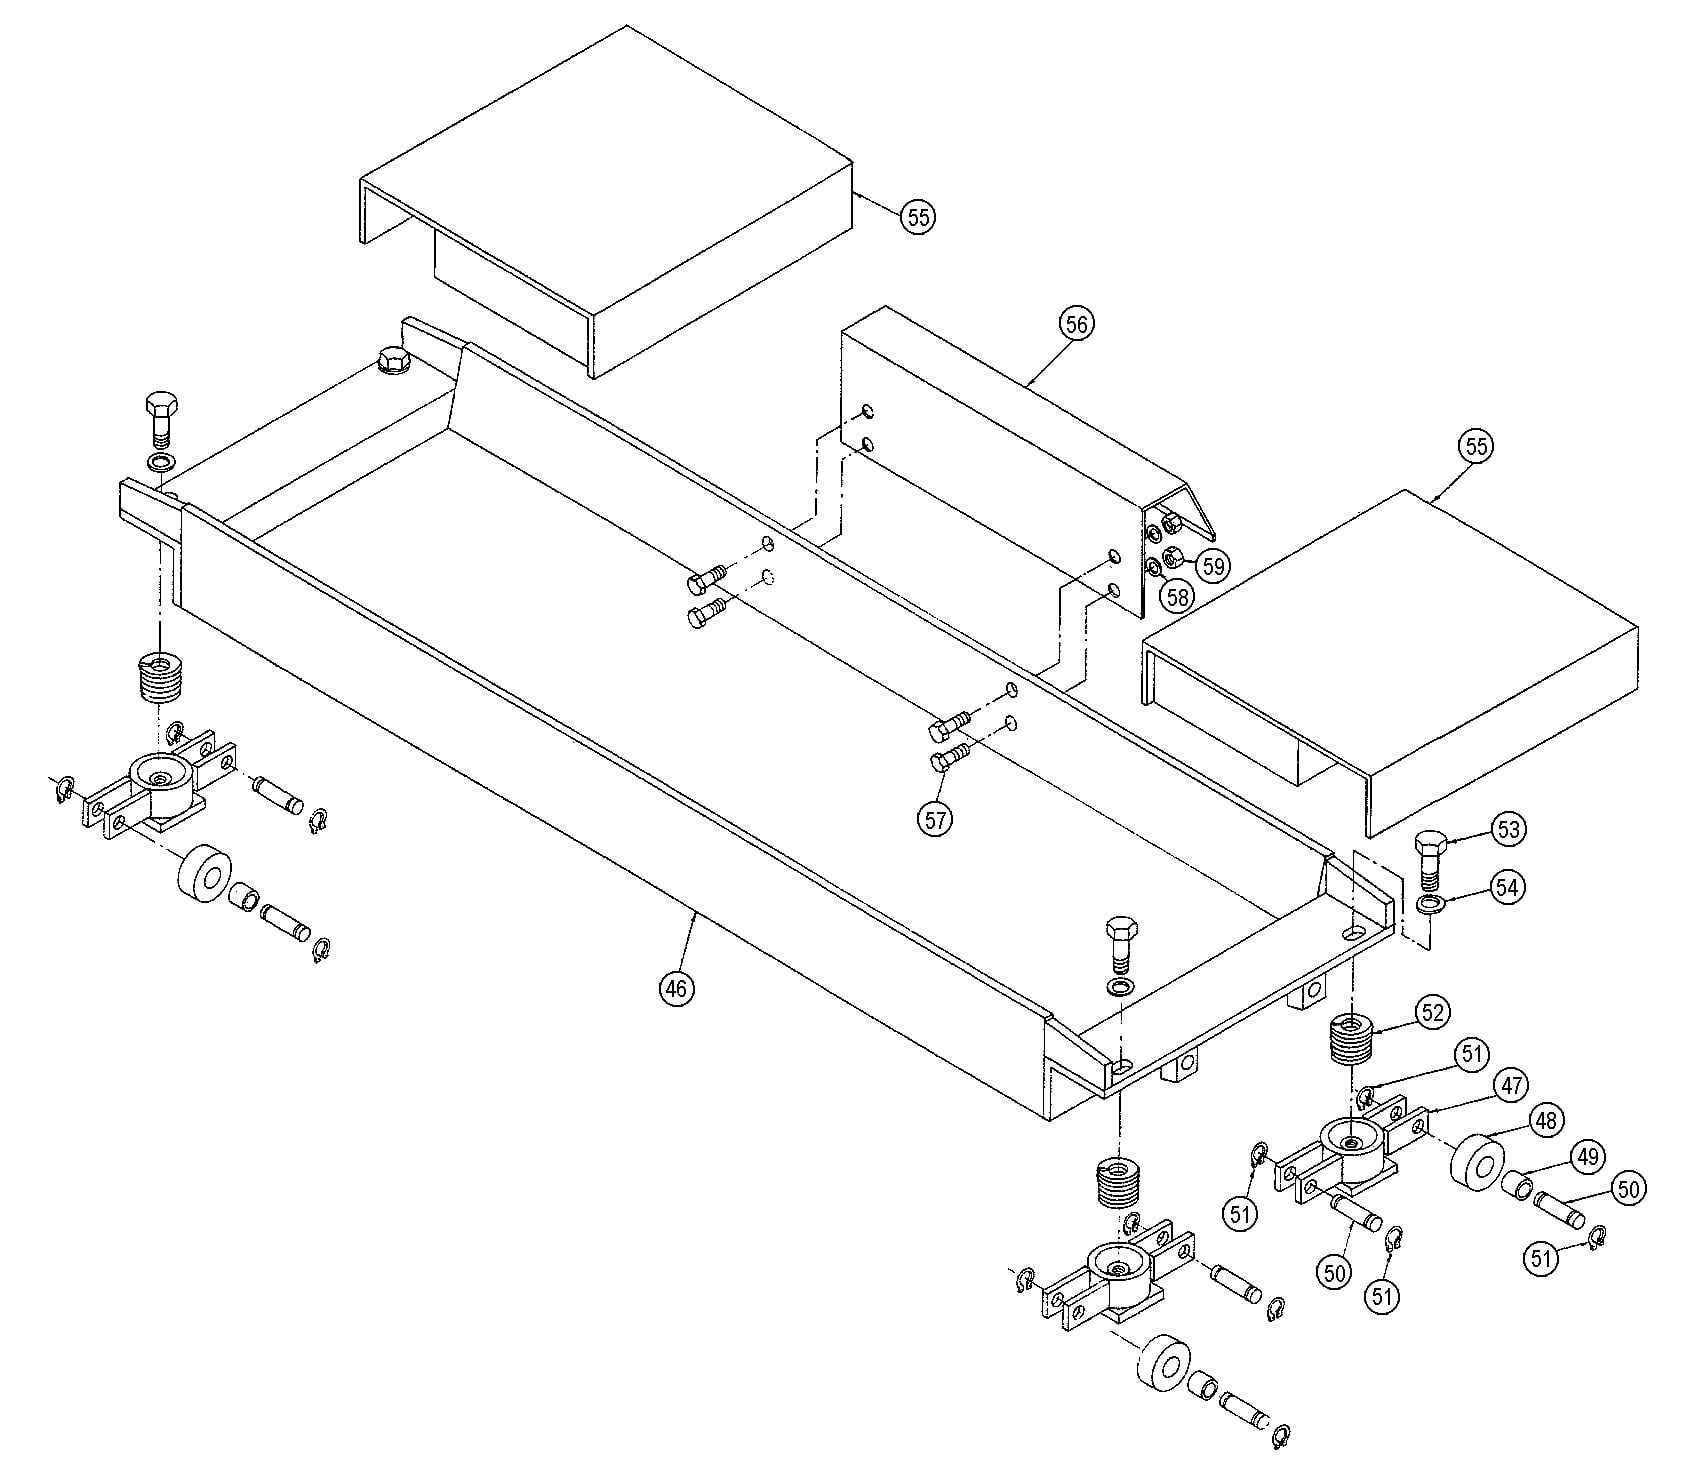 Parts for Ben Pearson LMA 12 Optional Jacking Channel Kit | SVI  International, Inc.SVI International, Inc